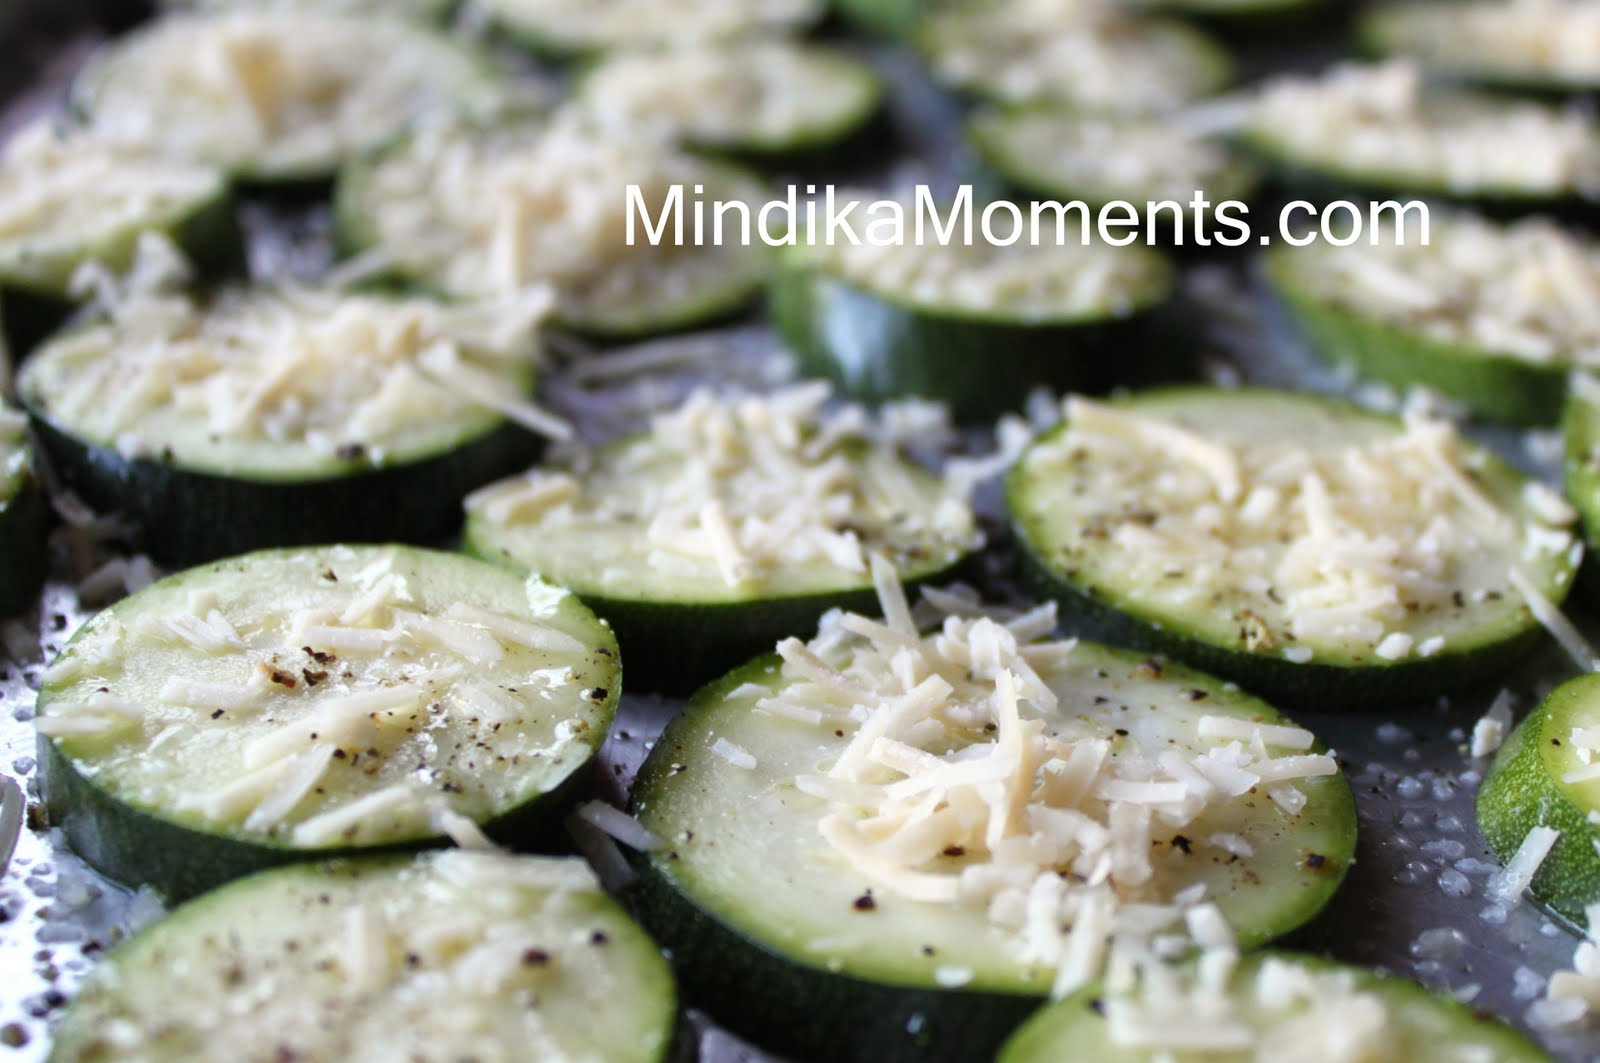 Mindika Moments: PARMESAN ZUCCHINI CRISPS